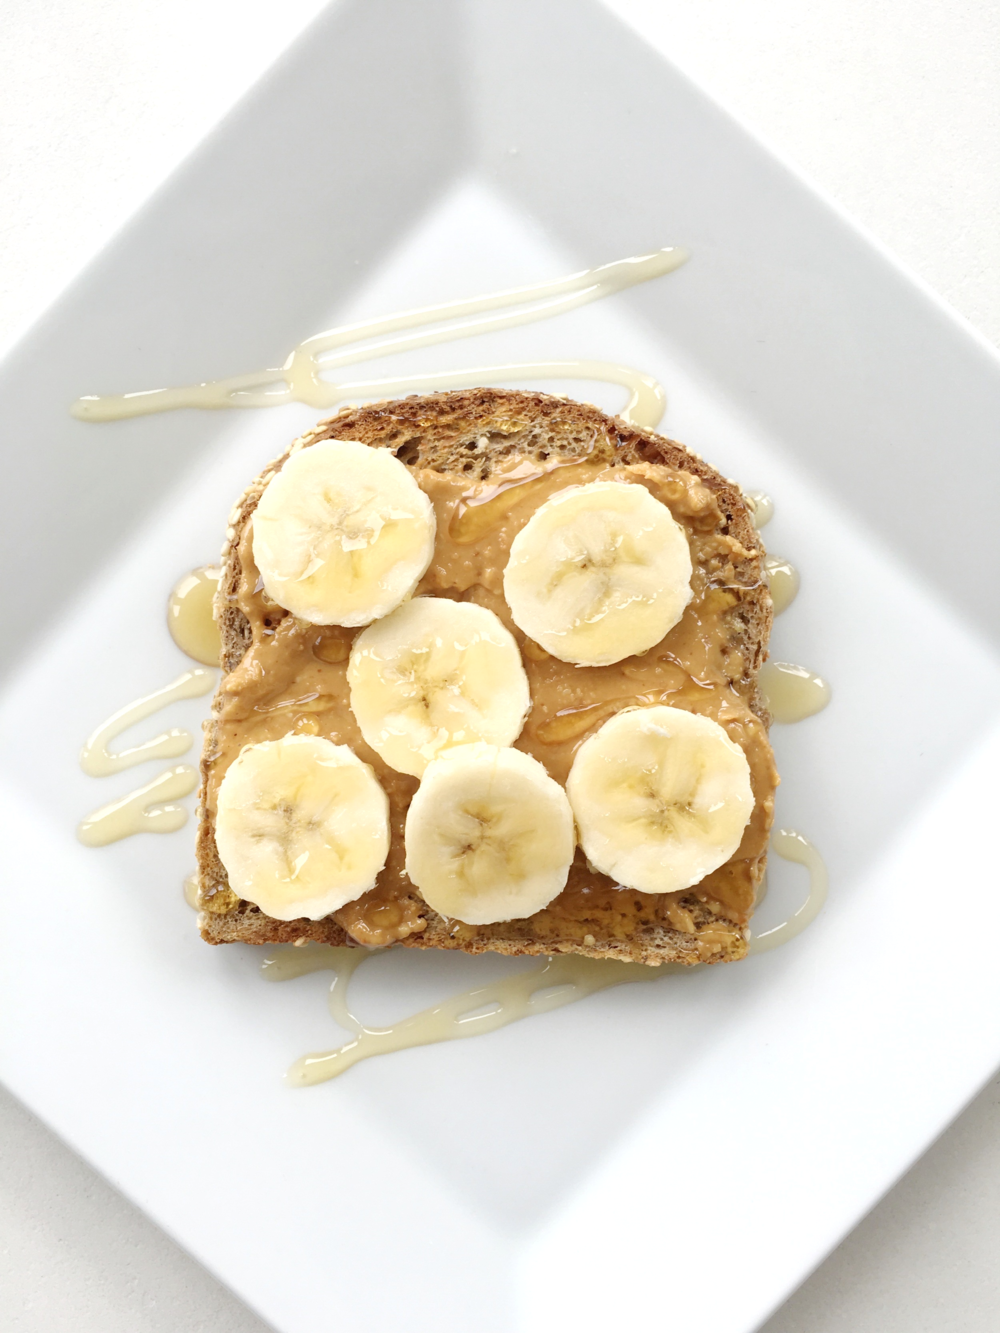 peanut butter + banana + honey